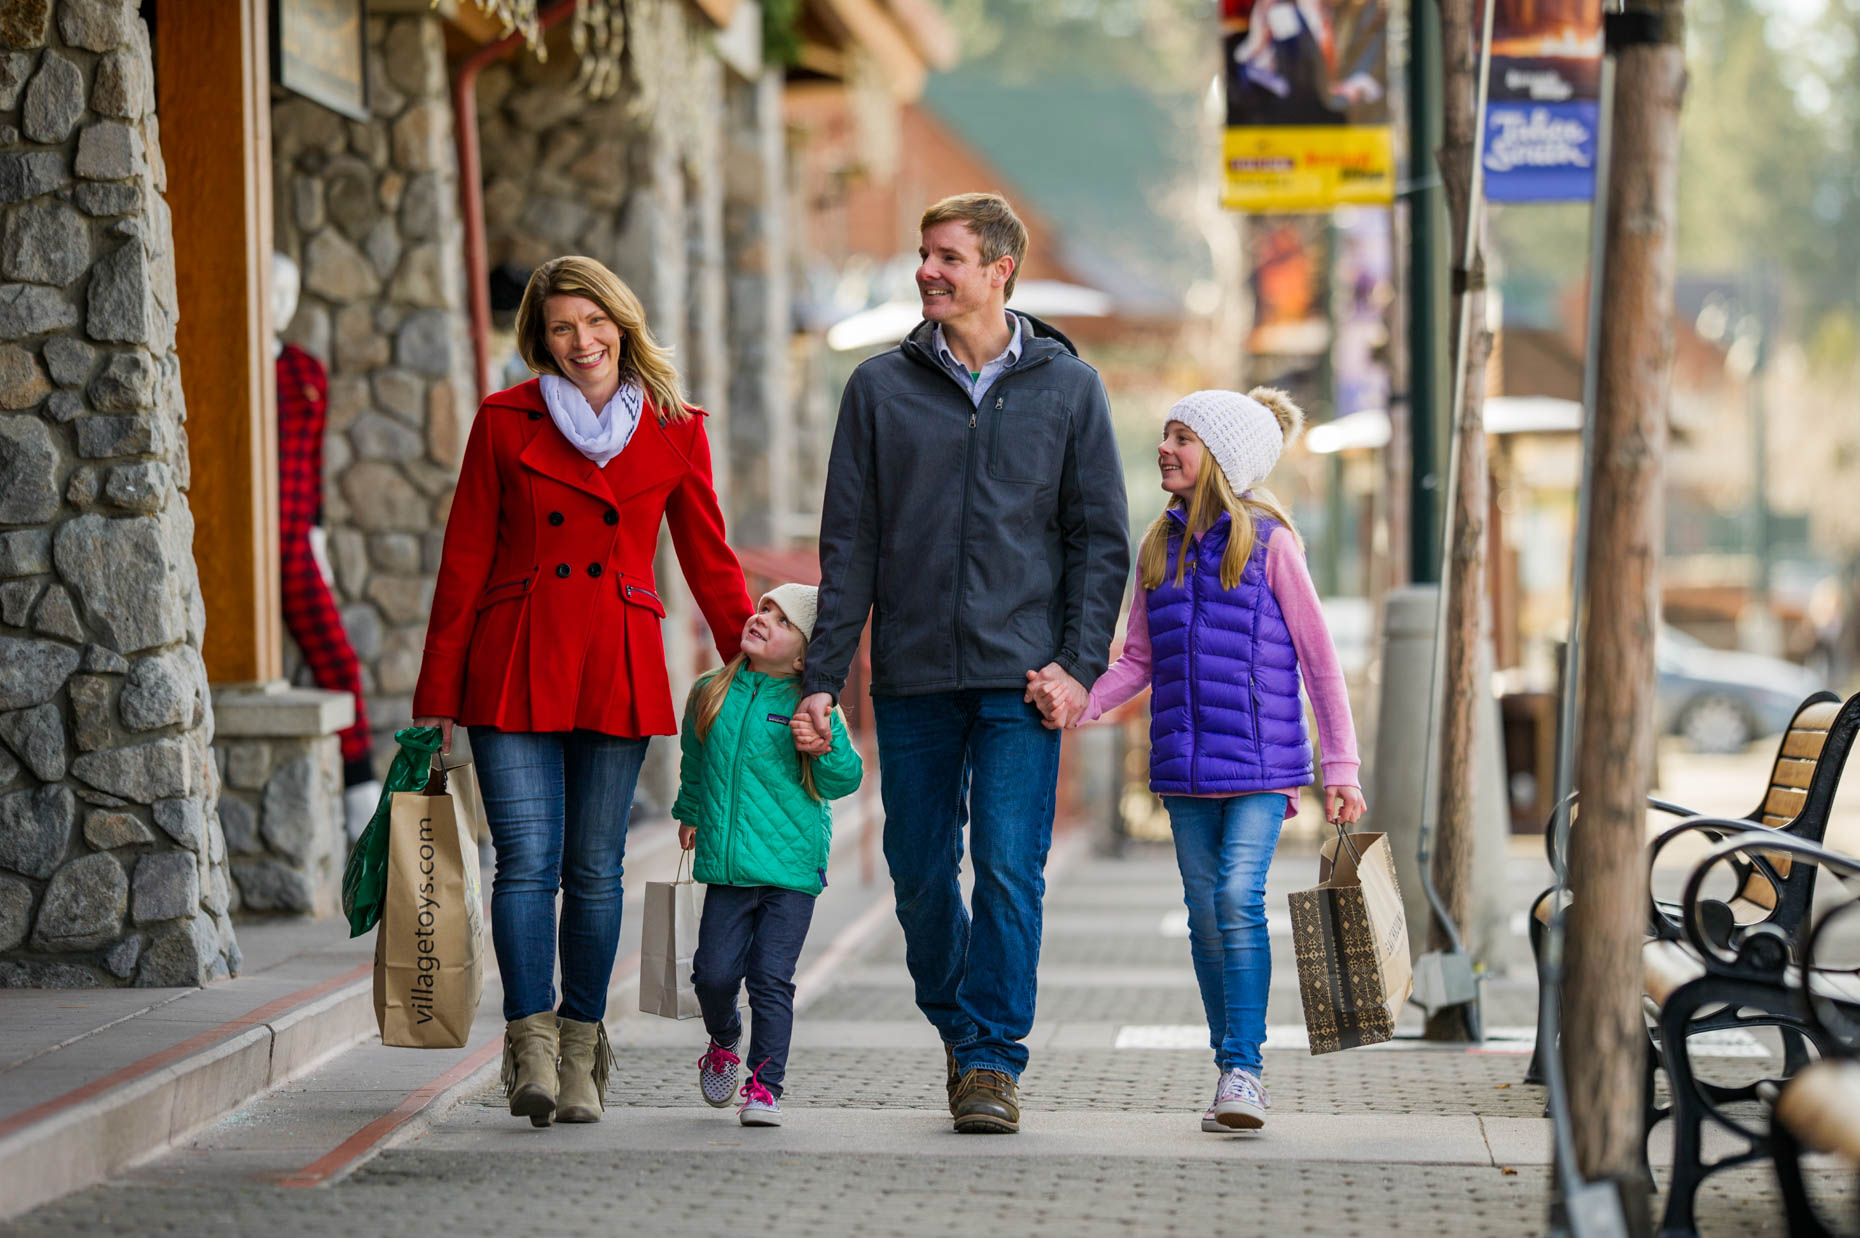 Lifestyle - Family Shopping, Heavenly Village, South Lake Tahoe, California